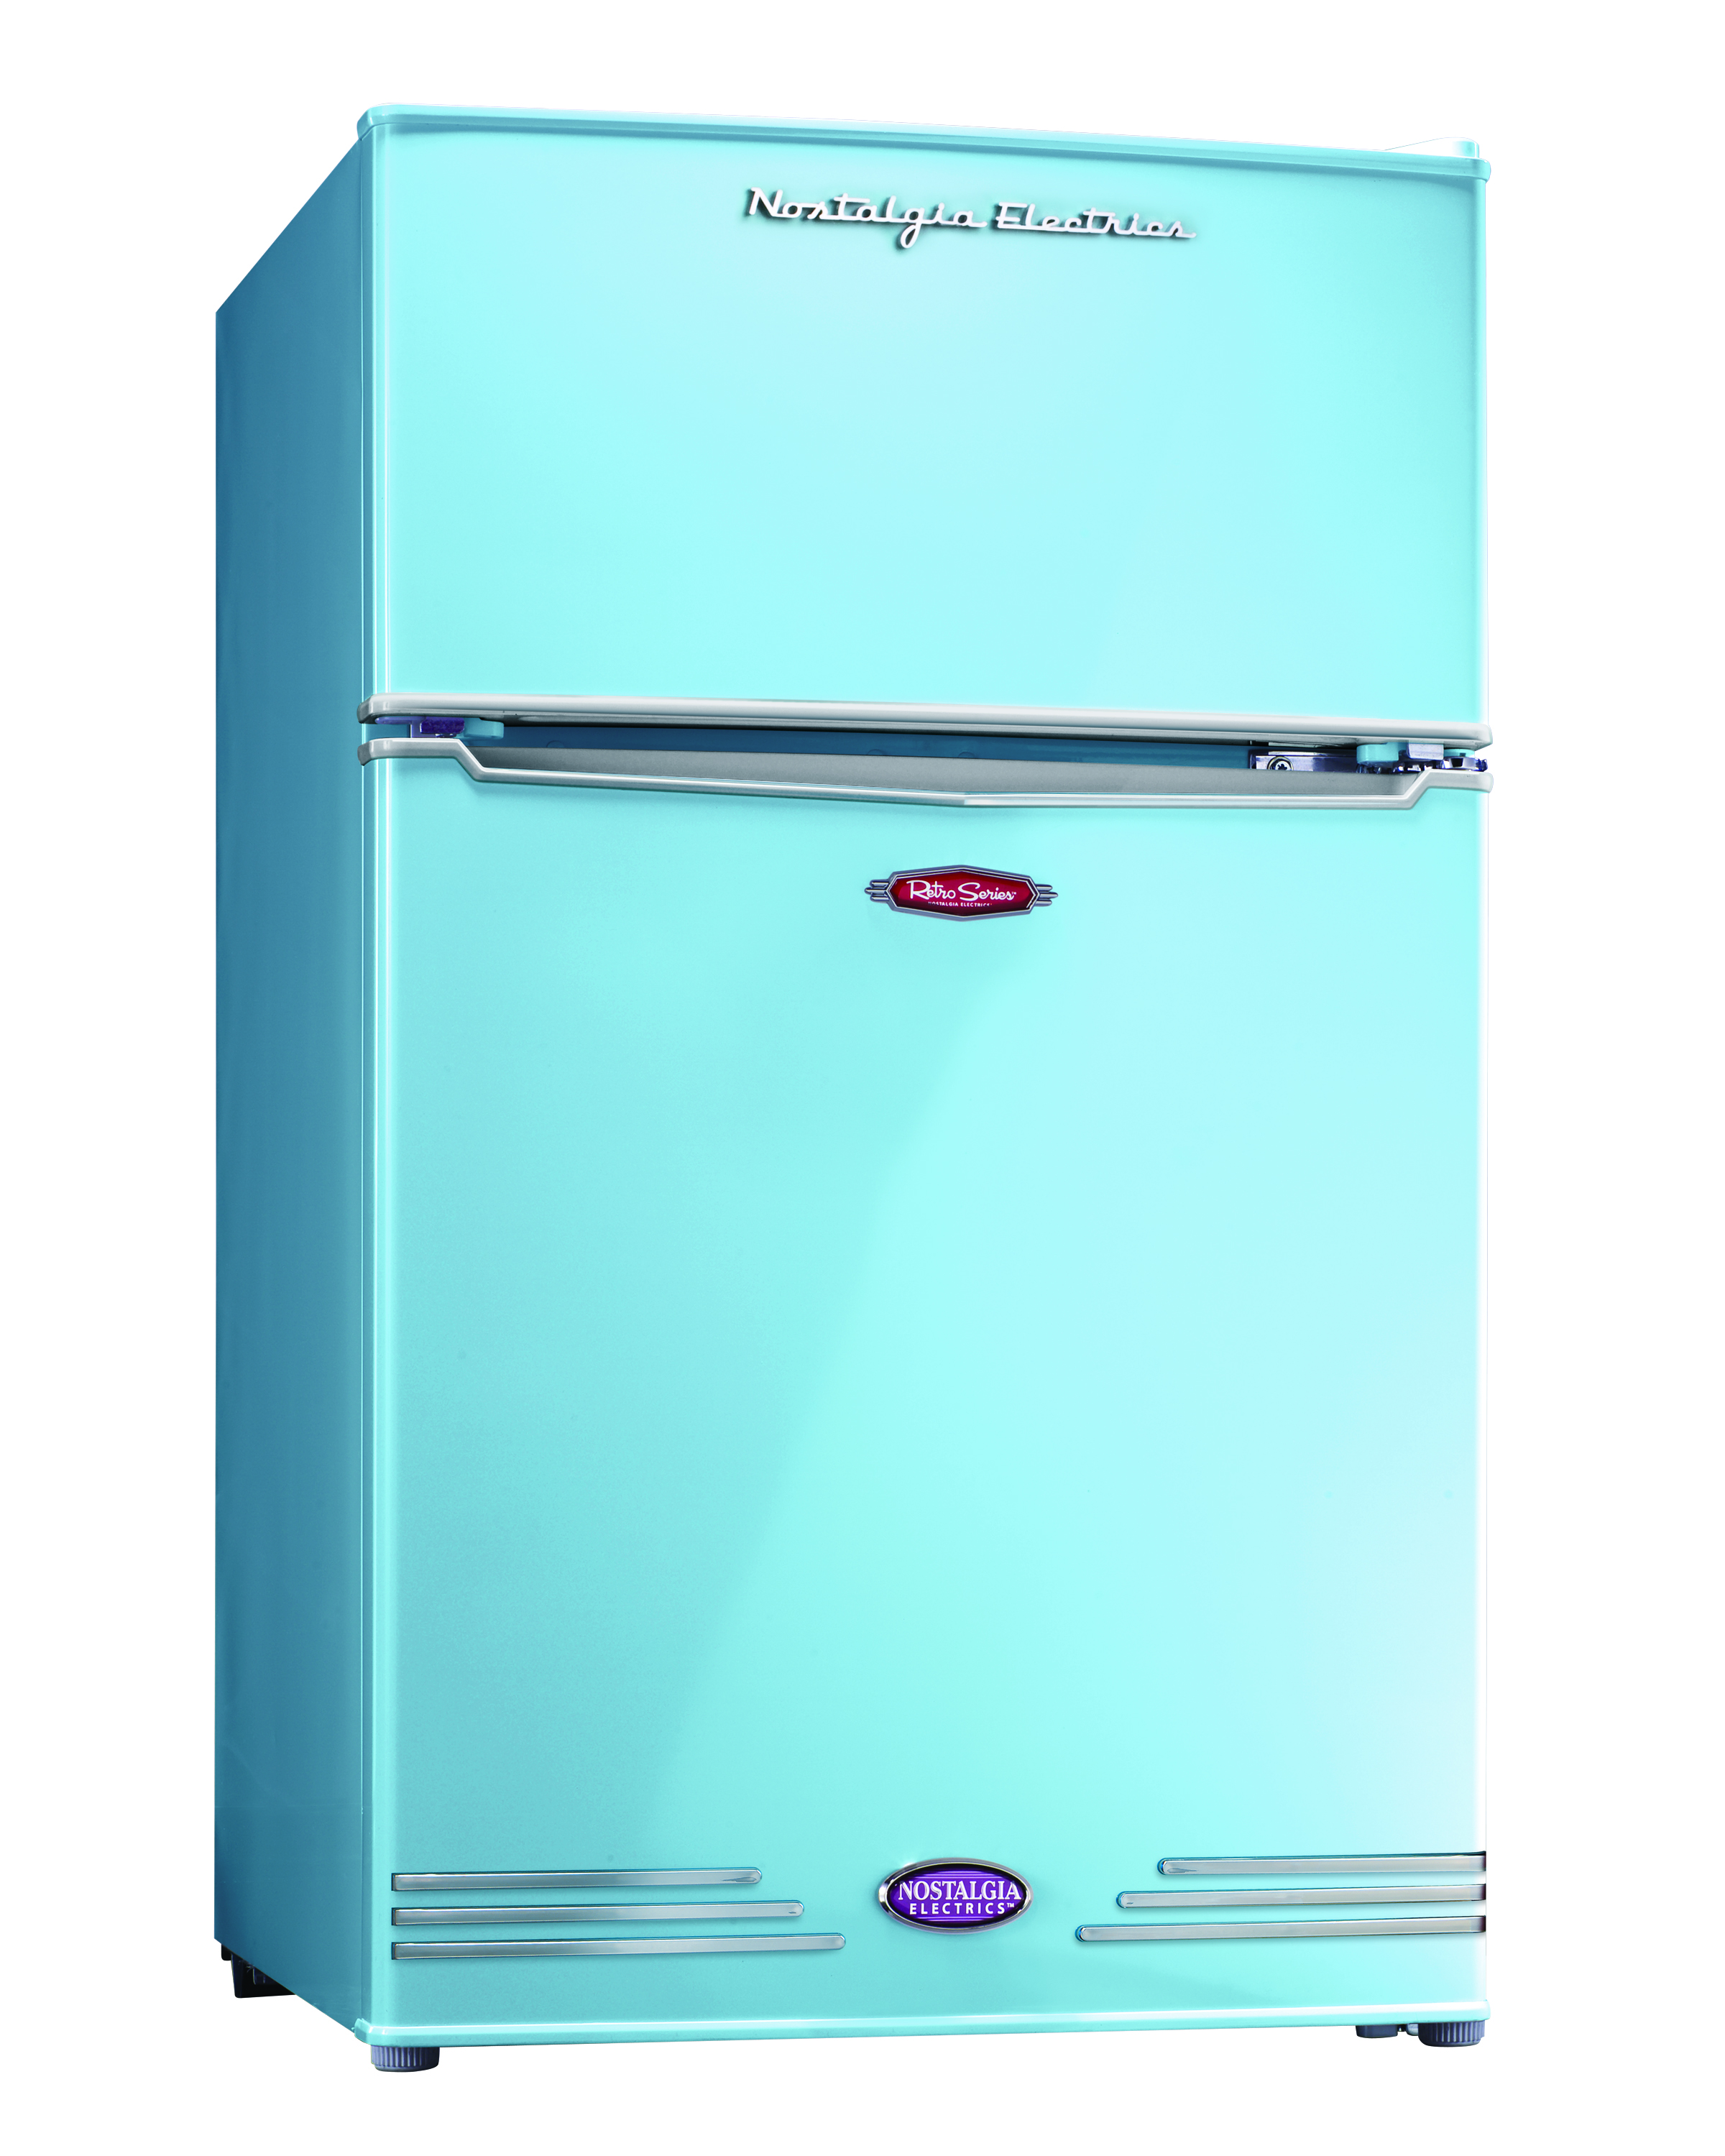 Brilliant Nostalgia Retro Mini Fridge 2400 x 3000 · 2901 kB · jpeg